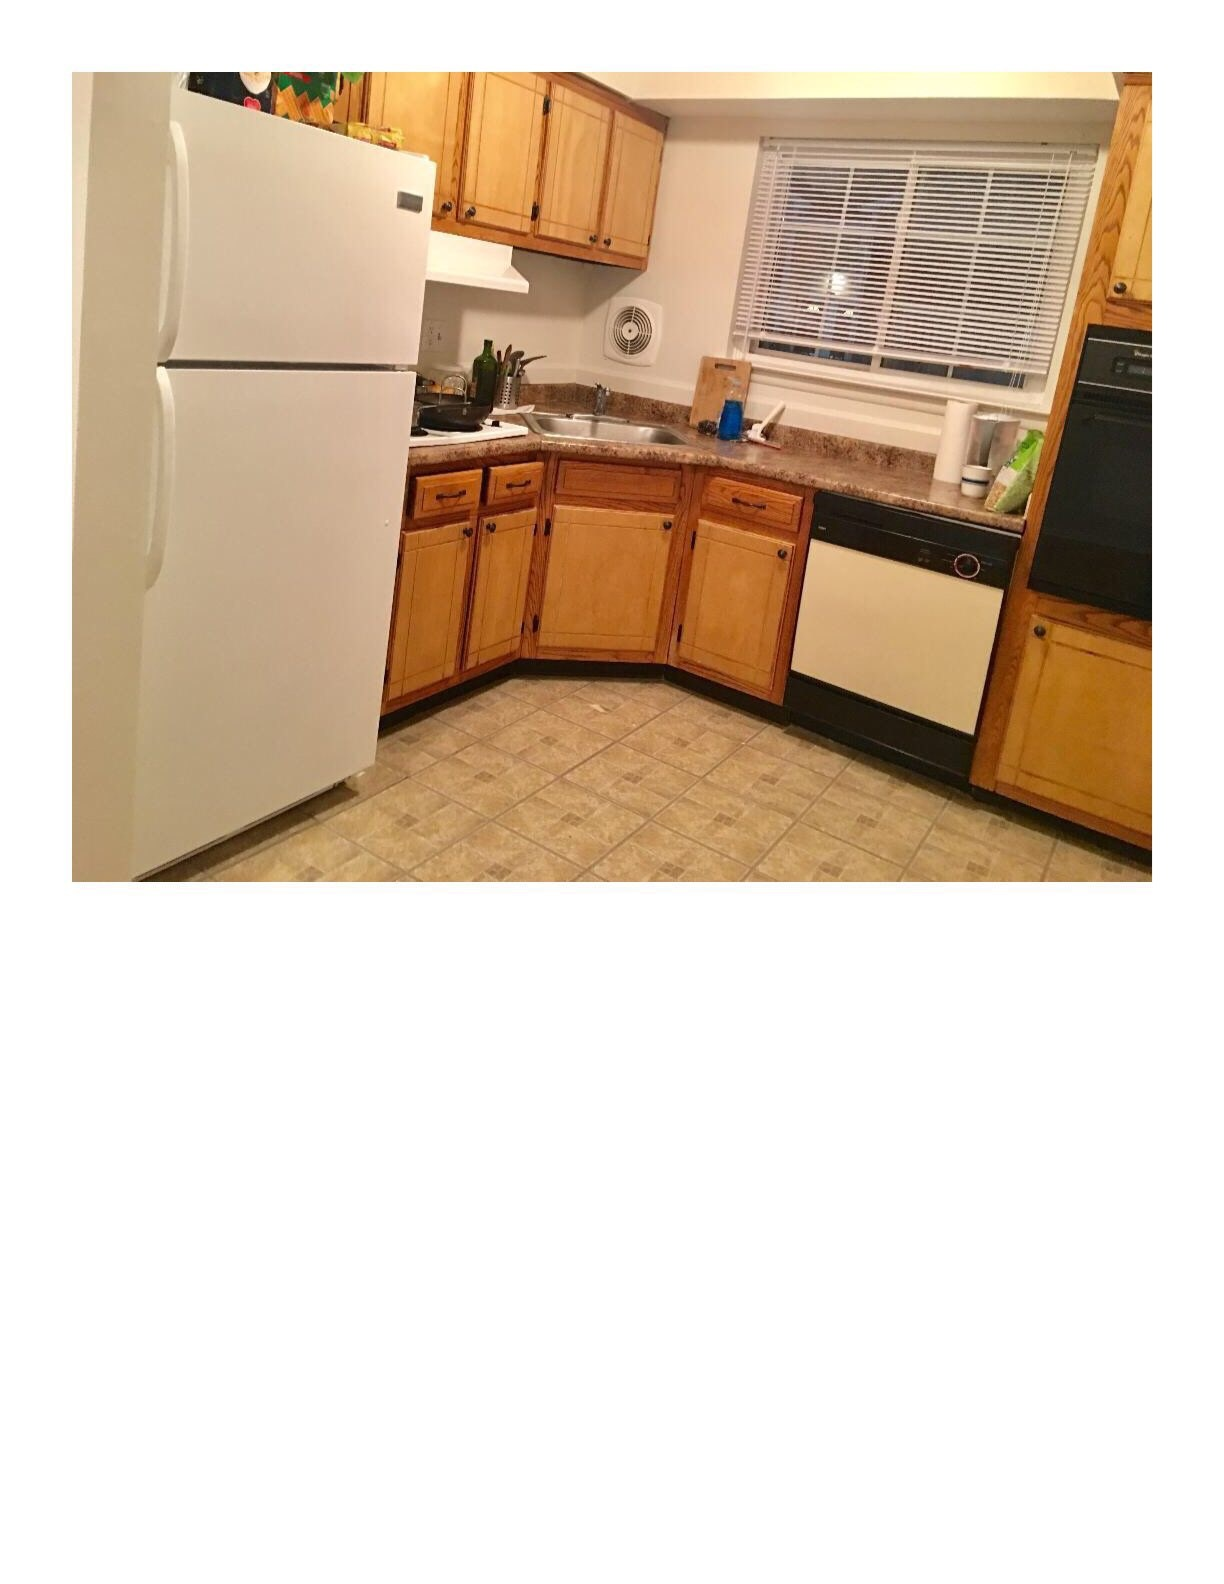 Somerville, NJ - Indian Events, Roommates, Day Care, Jobs